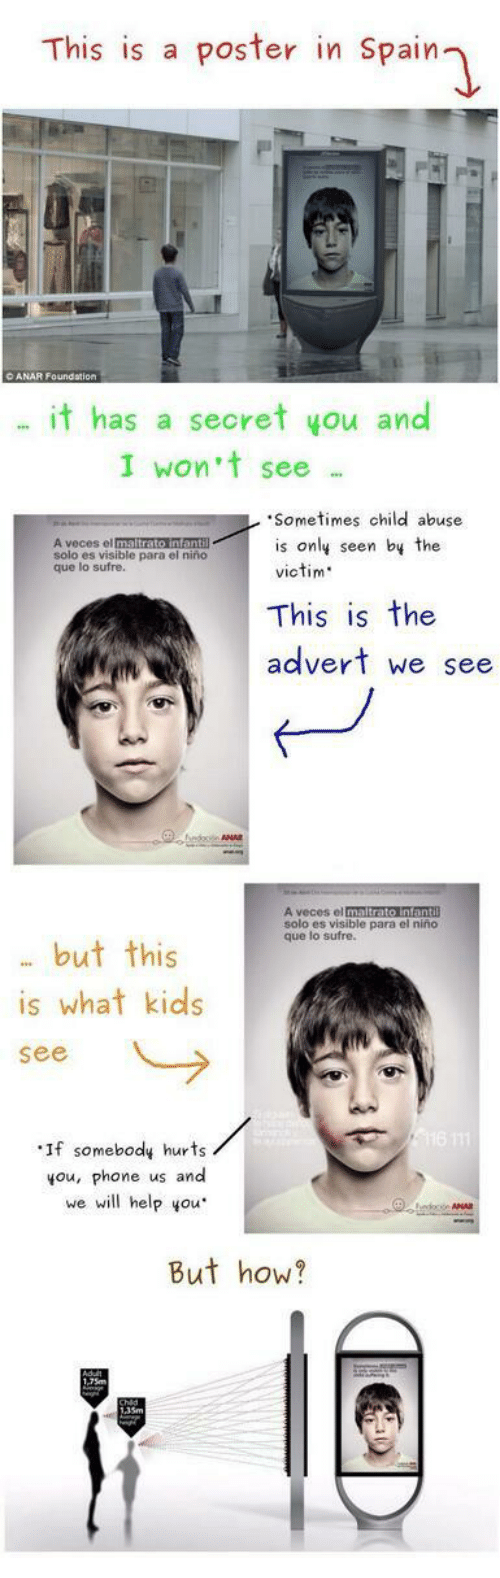 Phone, El Nino, and Help: This is a poster in Spain  it has a secret you and  I won't see  Sometimes child abuse  is only seen by the  victim  A veces el  solo es visible para el  que lo sufre.  niño  This is the  advert we see  ANA  solo es visible para el niño  que lo sufre.  . but this  is what kids  see  ·If somebody hurts  you, phone us and  we will help you  But how?